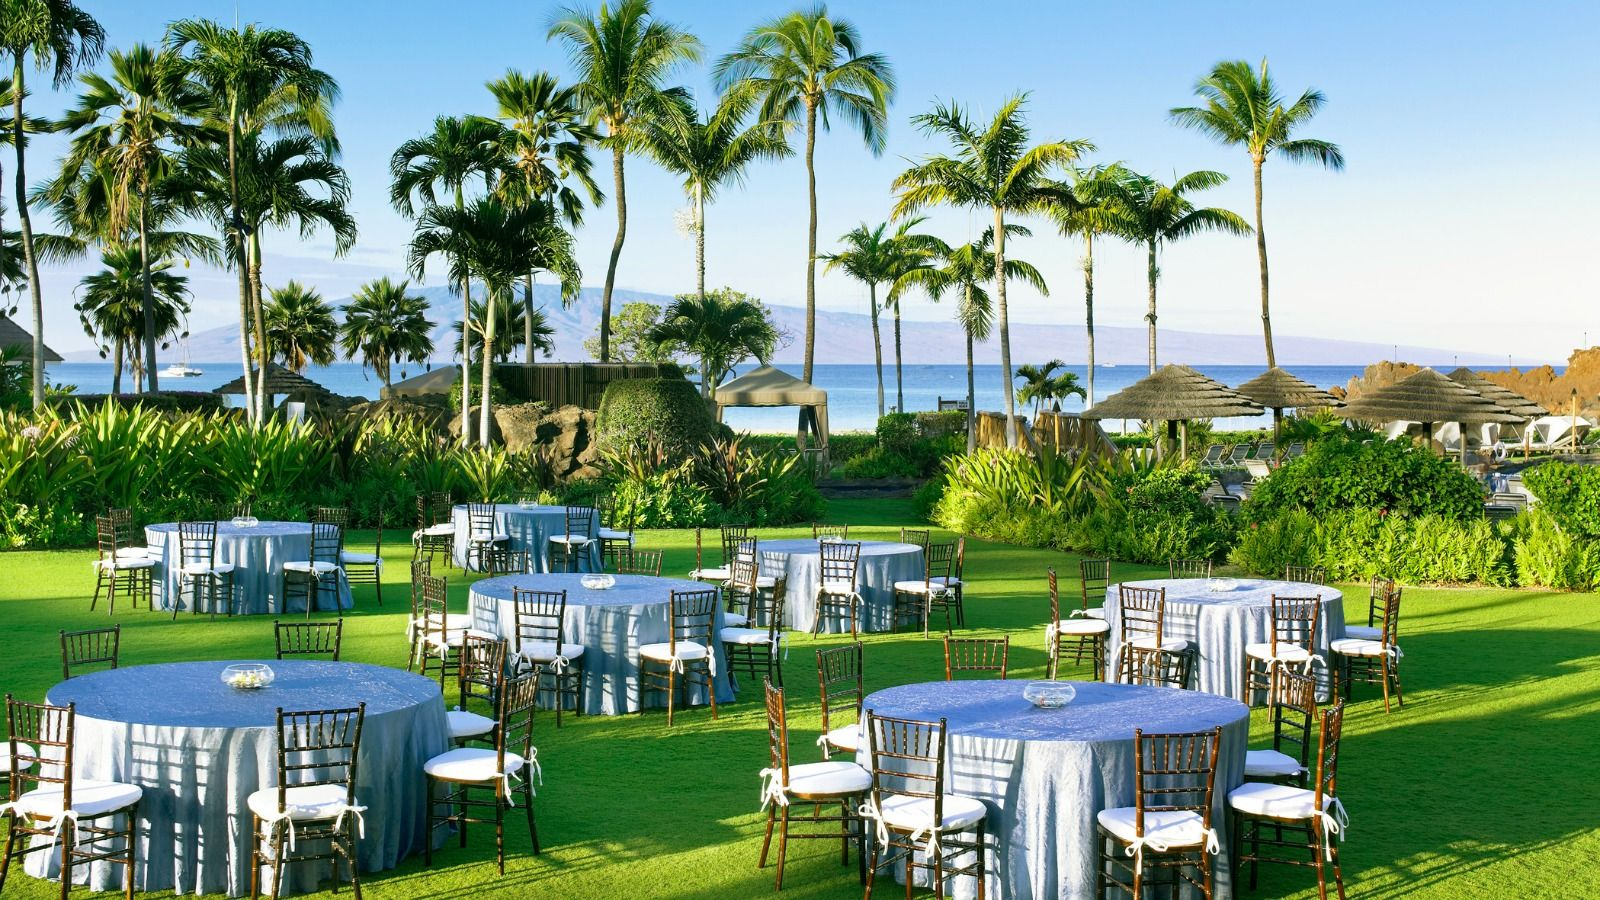 Meeting Space in Maui - Anuenue Lawn